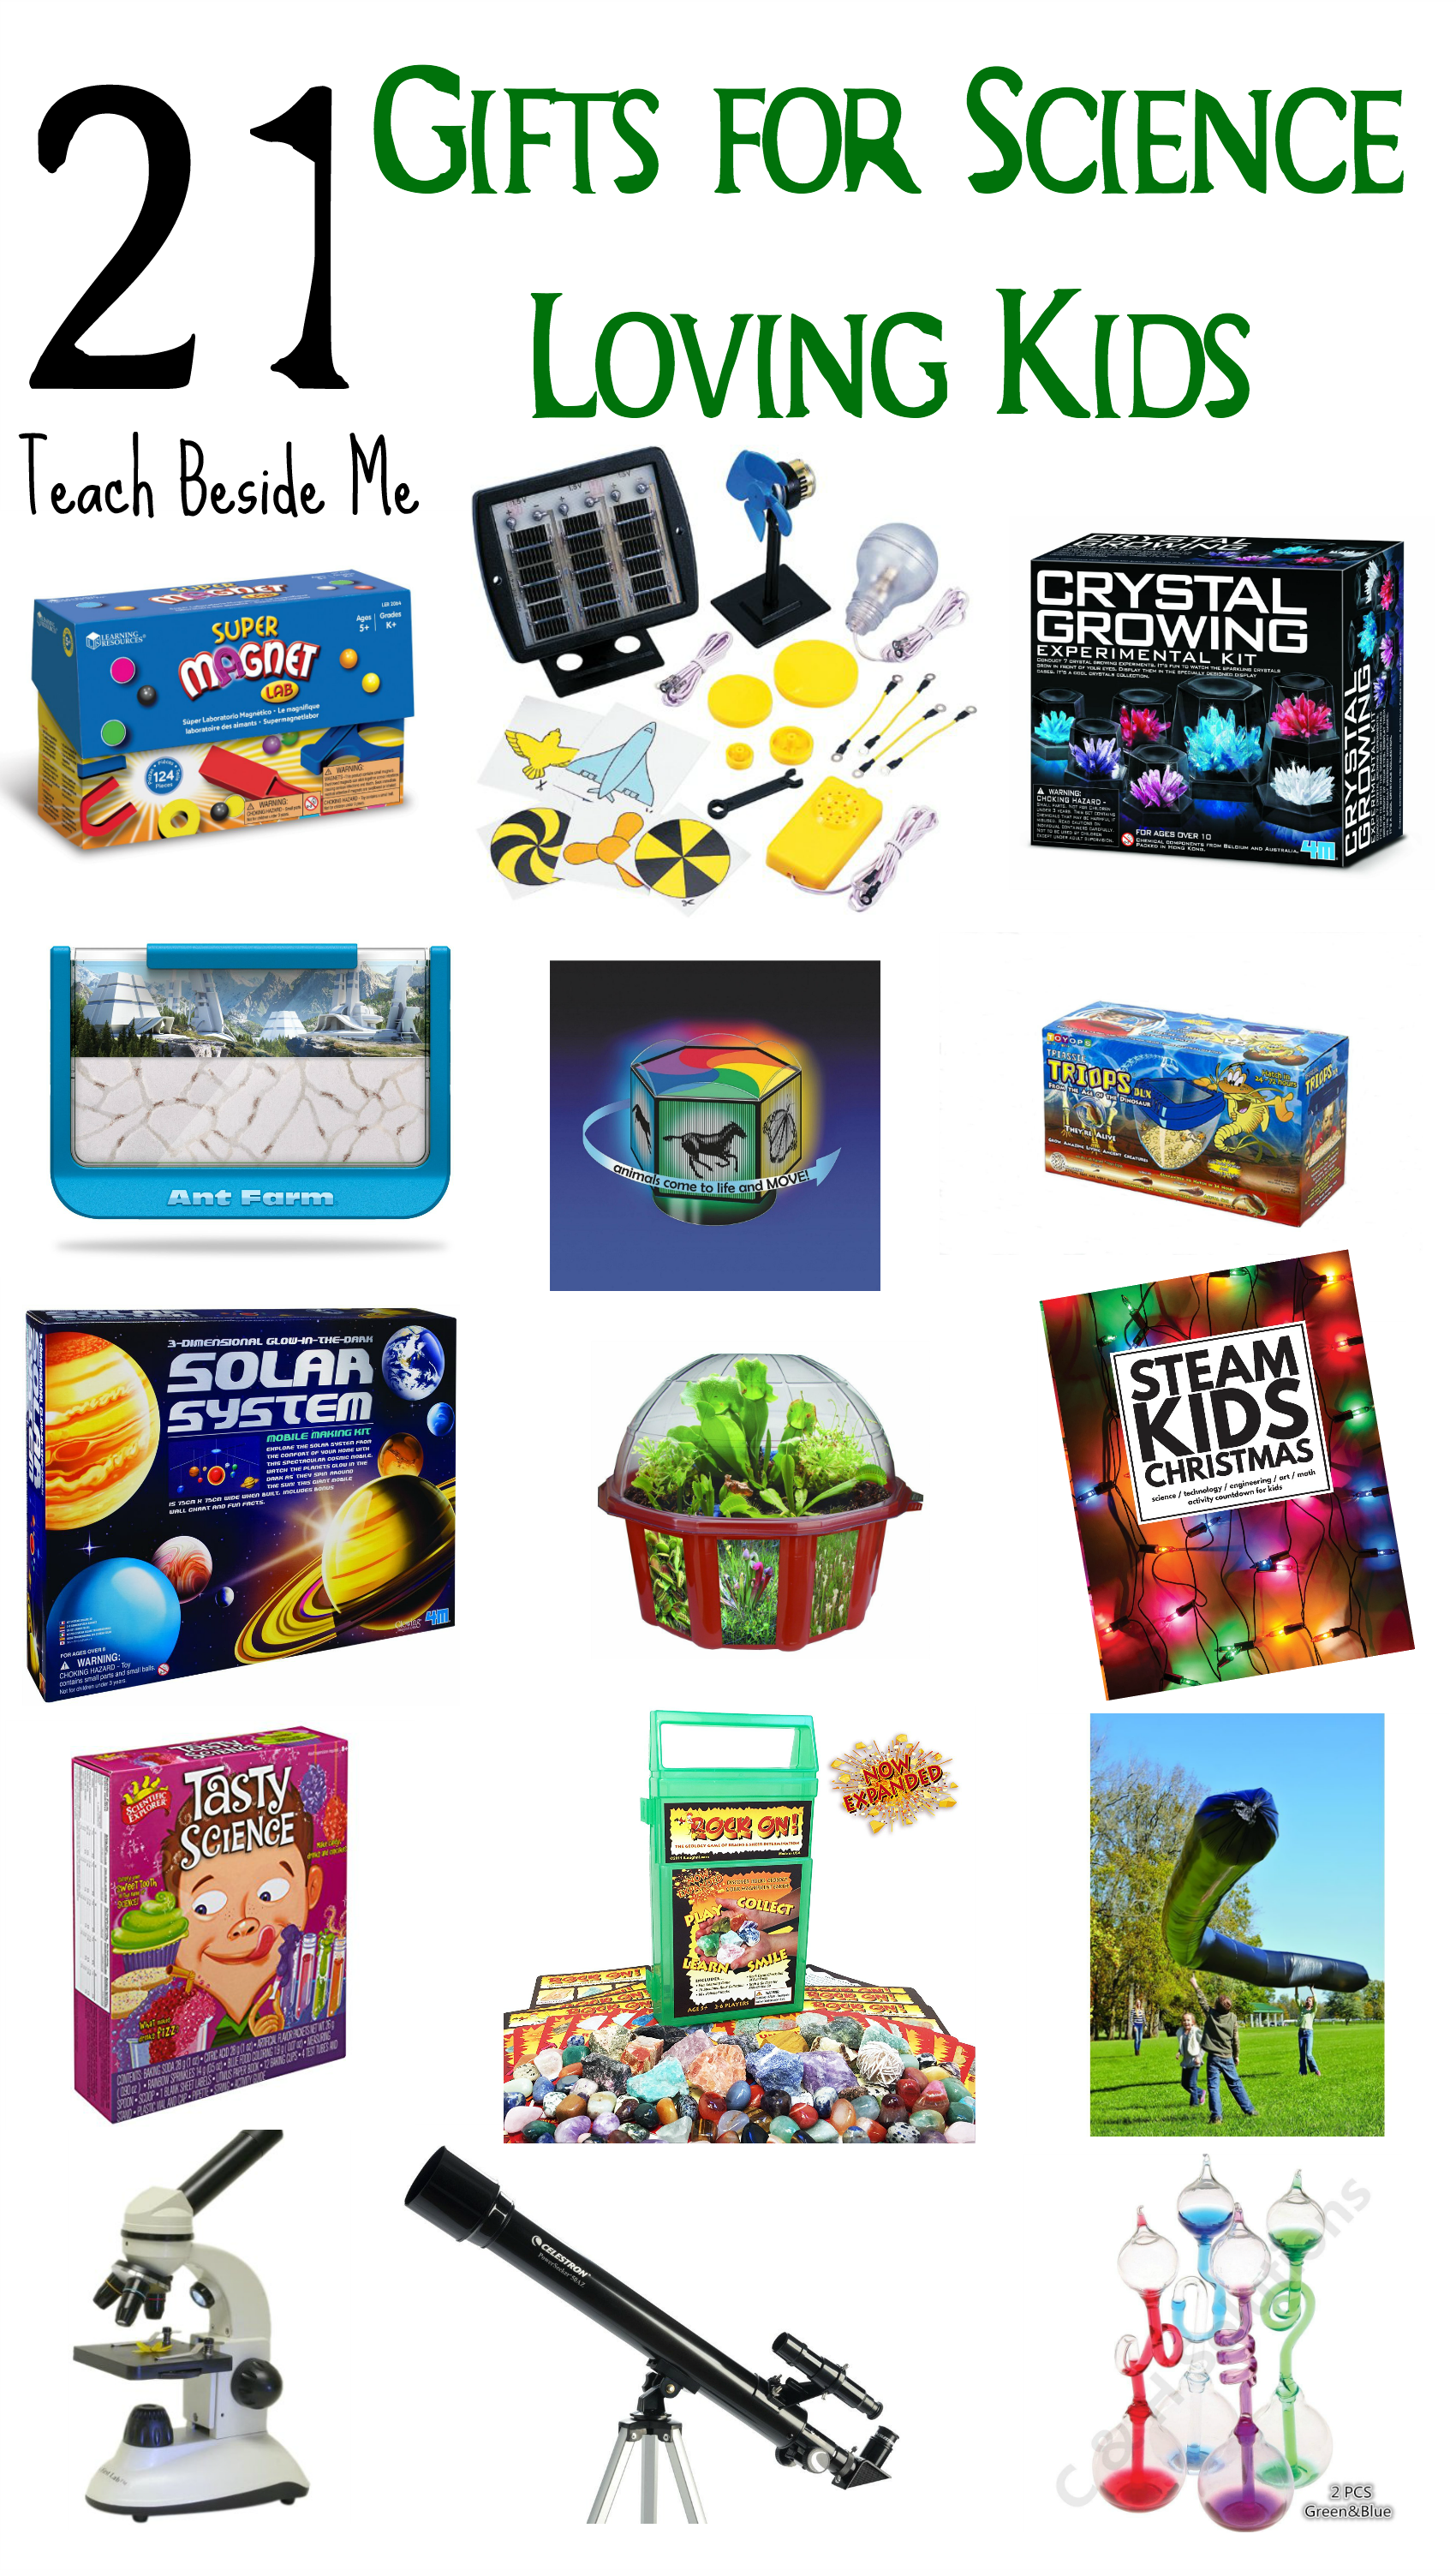 Science Toys For Teenagers : Science gifts for kids teach beside me